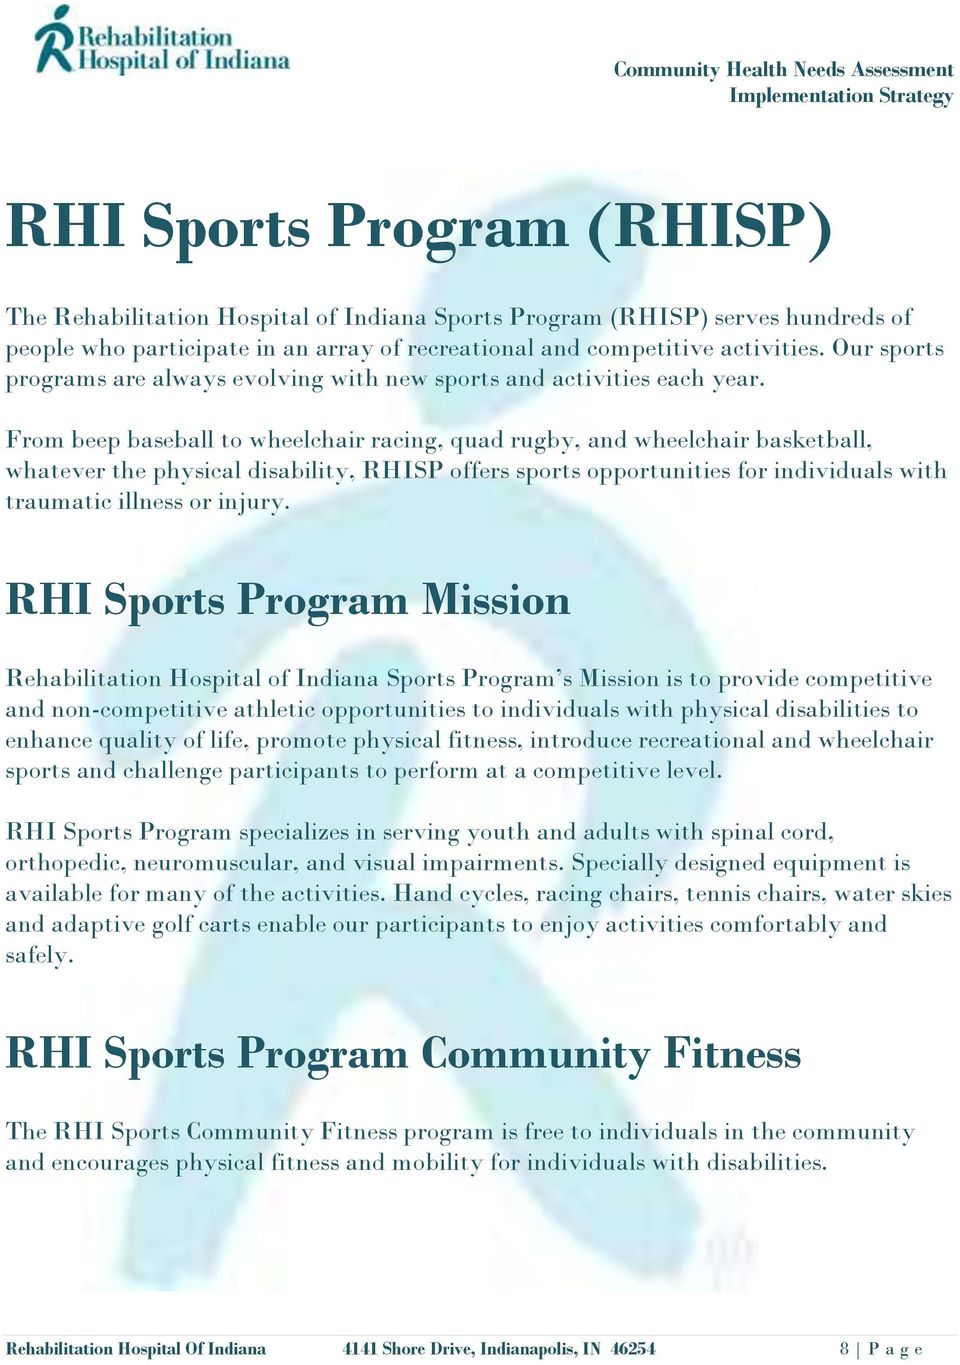 From beep baseball to wheelchair racing, quad rugby, and wheelchair basketball, whatever the physical disability, RHISP offers sports opportunities for individuals with traumatic illness or injury.